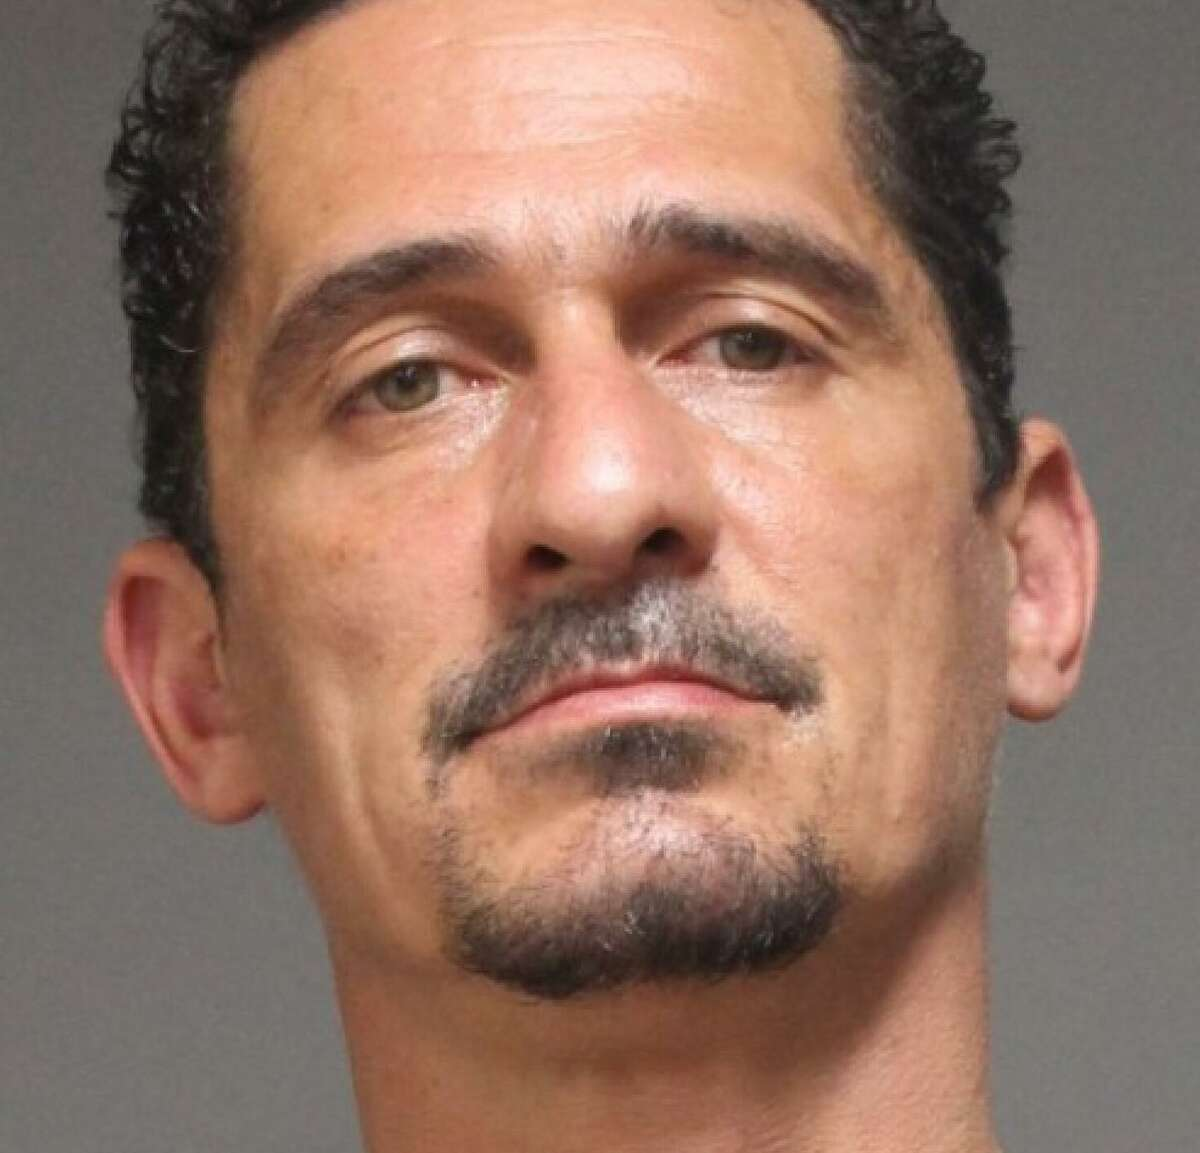 Fairfield police Lt. Antonio Granata said Daniel Clough, 46, was charged with third-degree assault and violating a protective order after an alleged altercation on Sept. 16.